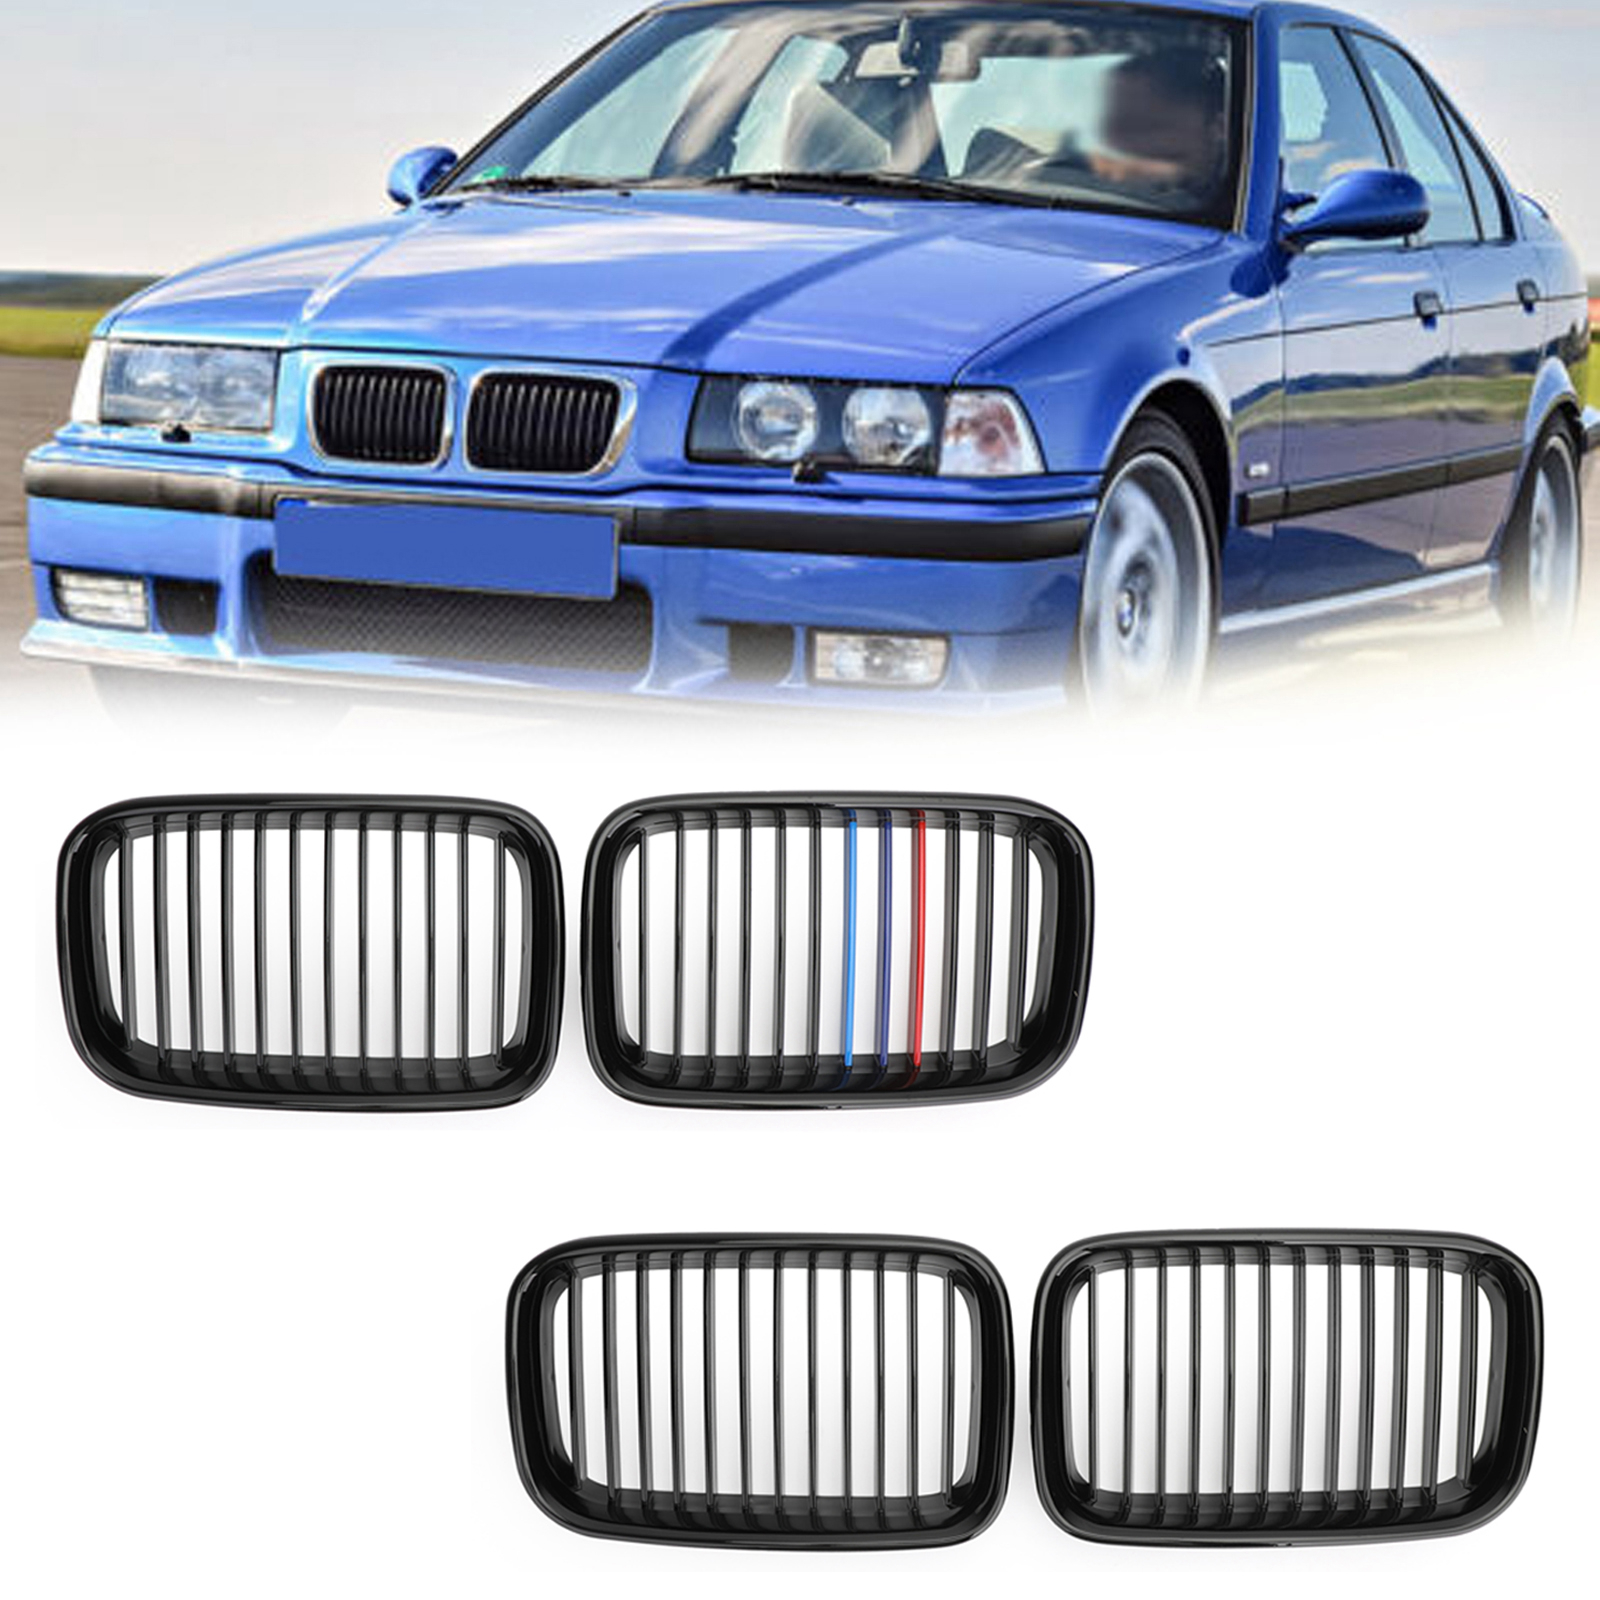 NEW BMW 3 SERIES E36 1996-1998 FRONT KIDNEY GRILL CHROME PAIR SET RIGHT LEFT